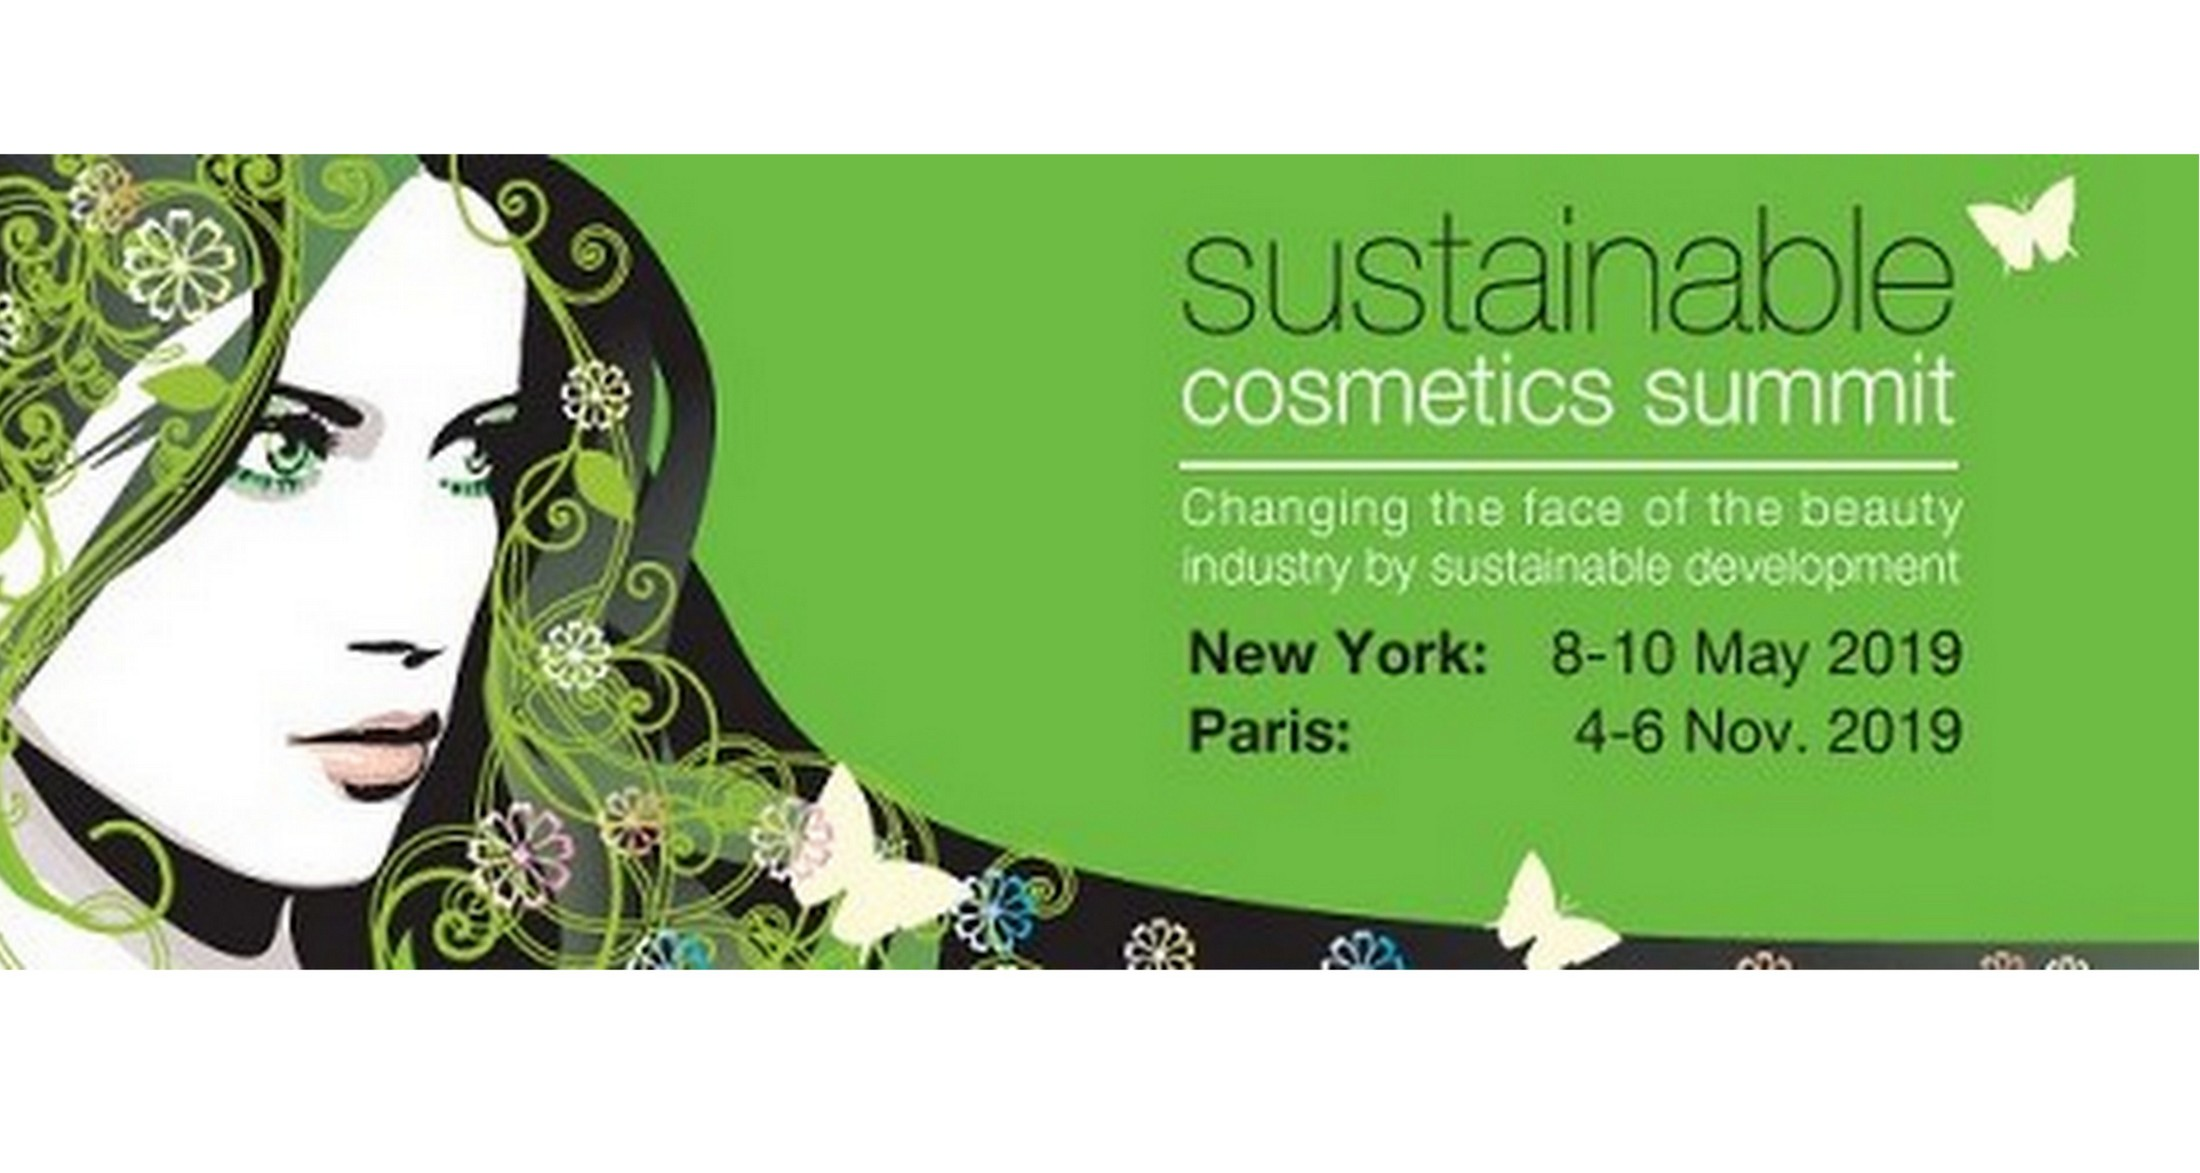 Sustainable Cosmetics Summit North America 2019